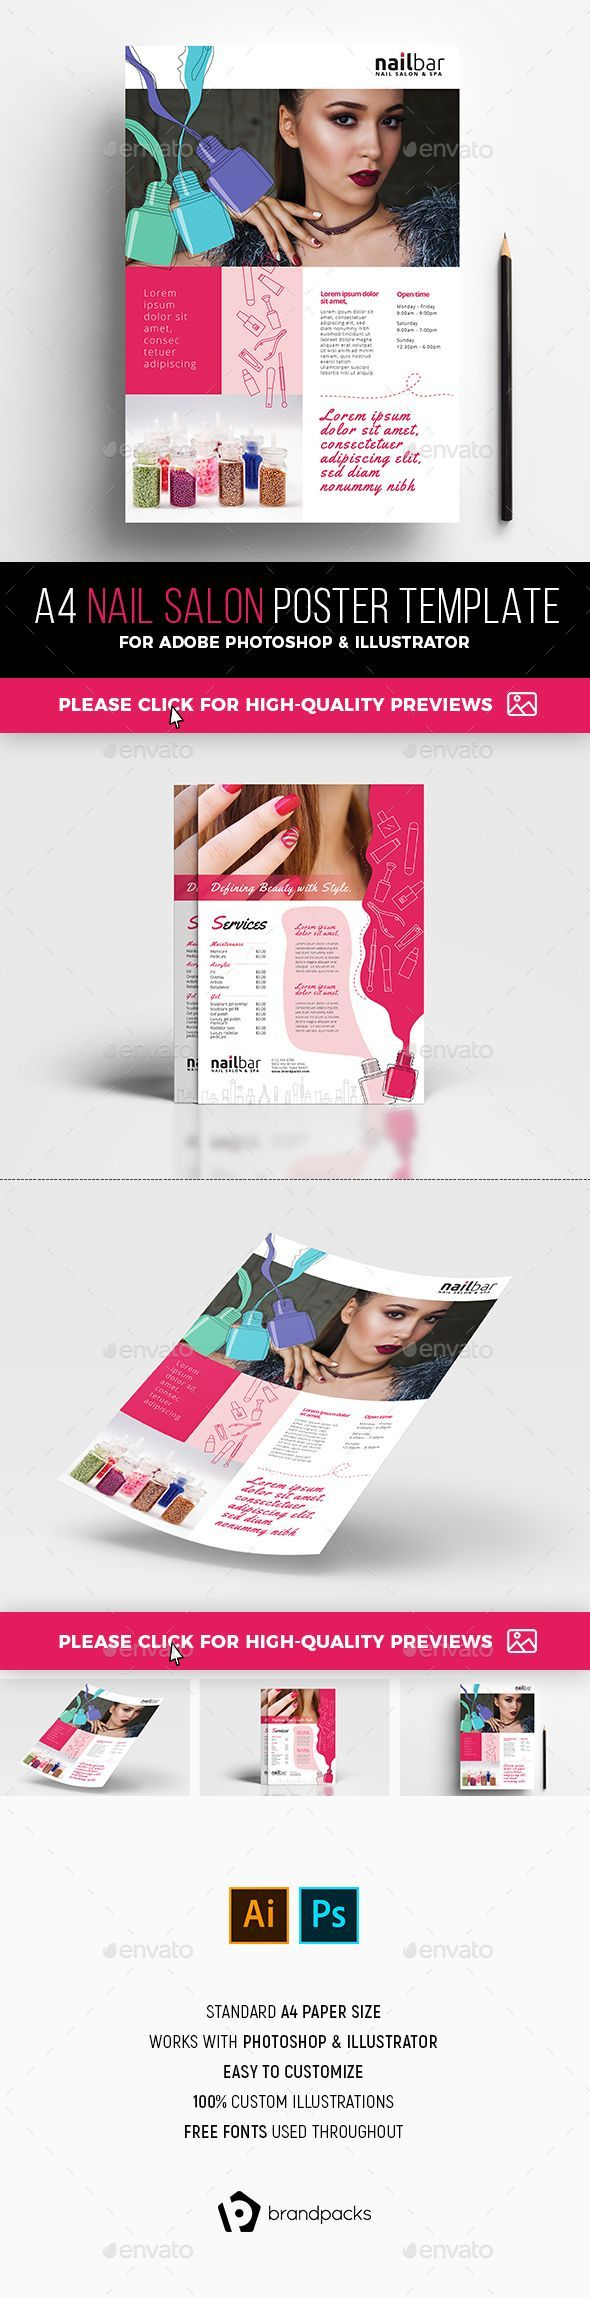 a4 nail salon poster advertisement template commerce flyers